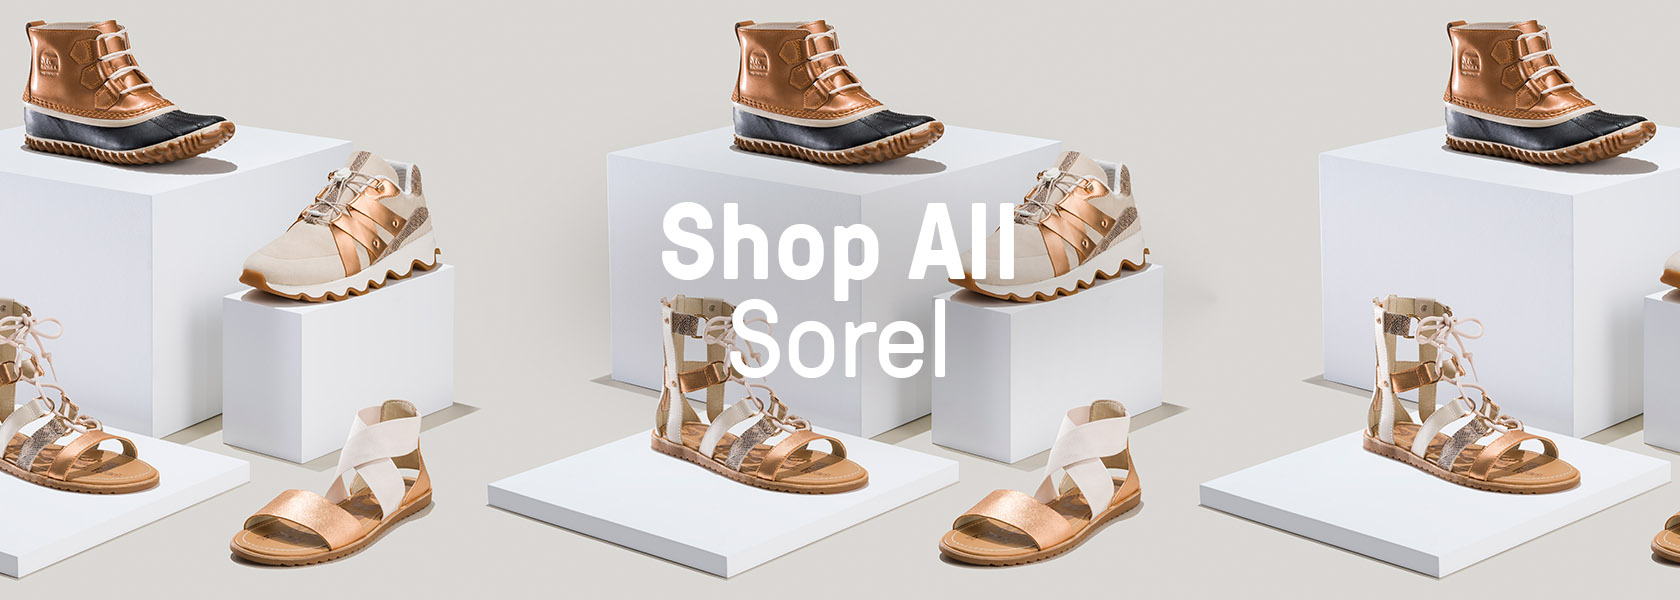 Sorel shoes and sandals